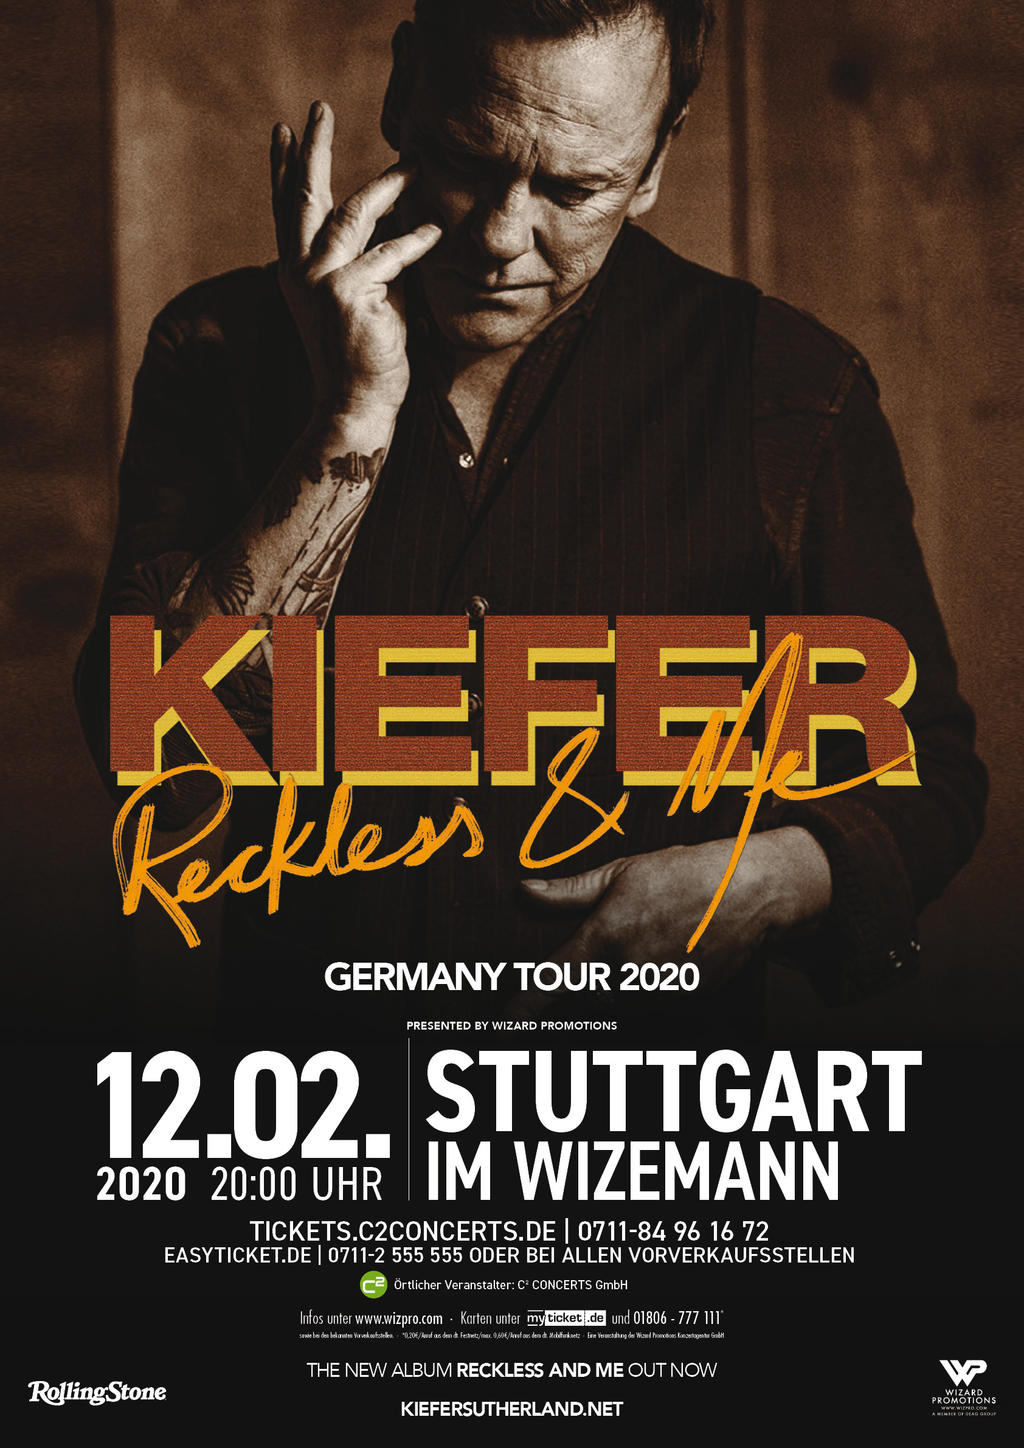 Kiefer Sutherland Tickets